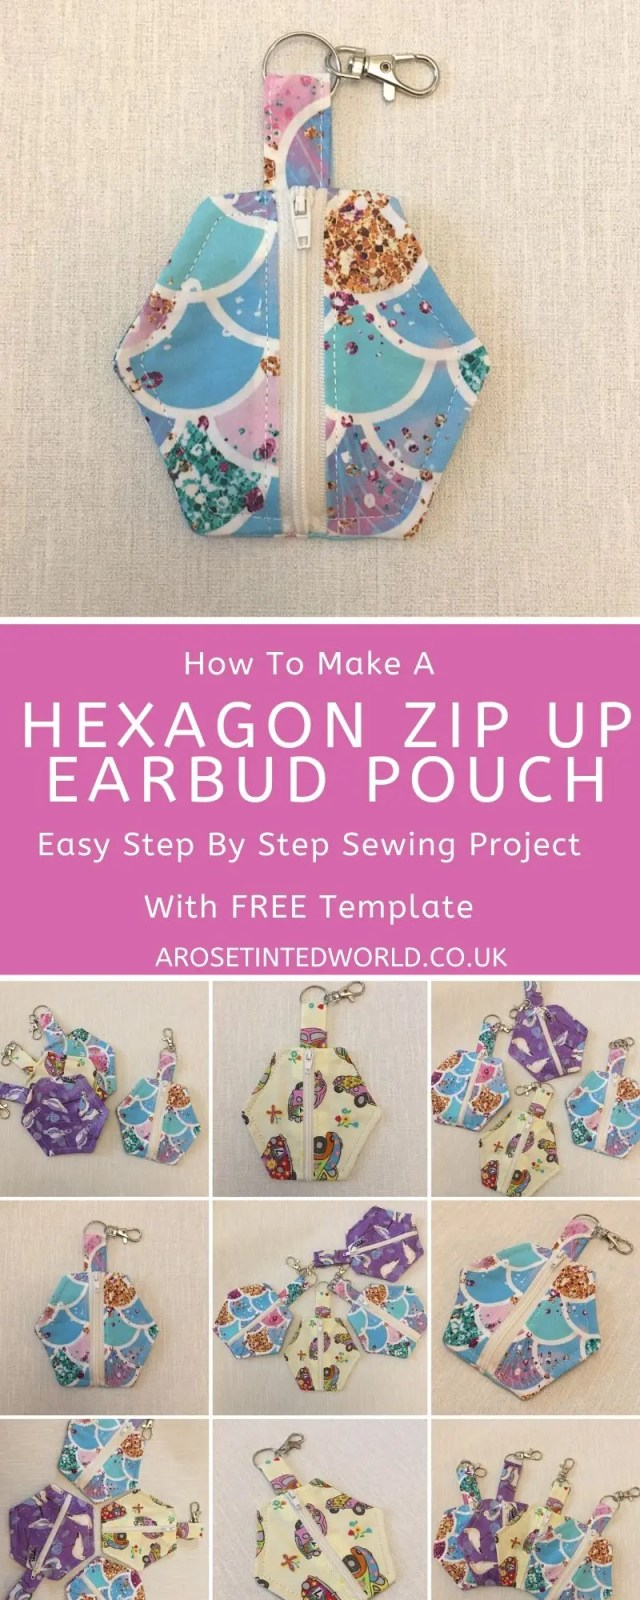 How To Make A Hexagon Zip Up Earbud Pouch - This handy holder clips to a bag to keep your ear buds or loose change safe. Great gift or item to make & sell. The hexagonal pattern is more zero waste as it tessellates. A great scrap busting design to use up all your little fabric scraps. Useful handy coin purse item. Easy step by step sewing project for beginners. Free template included in this simple pictorial tutorial. #sewing #easysewingprojects #zerowaste #sewingtutorial #fabricscraps #DIY